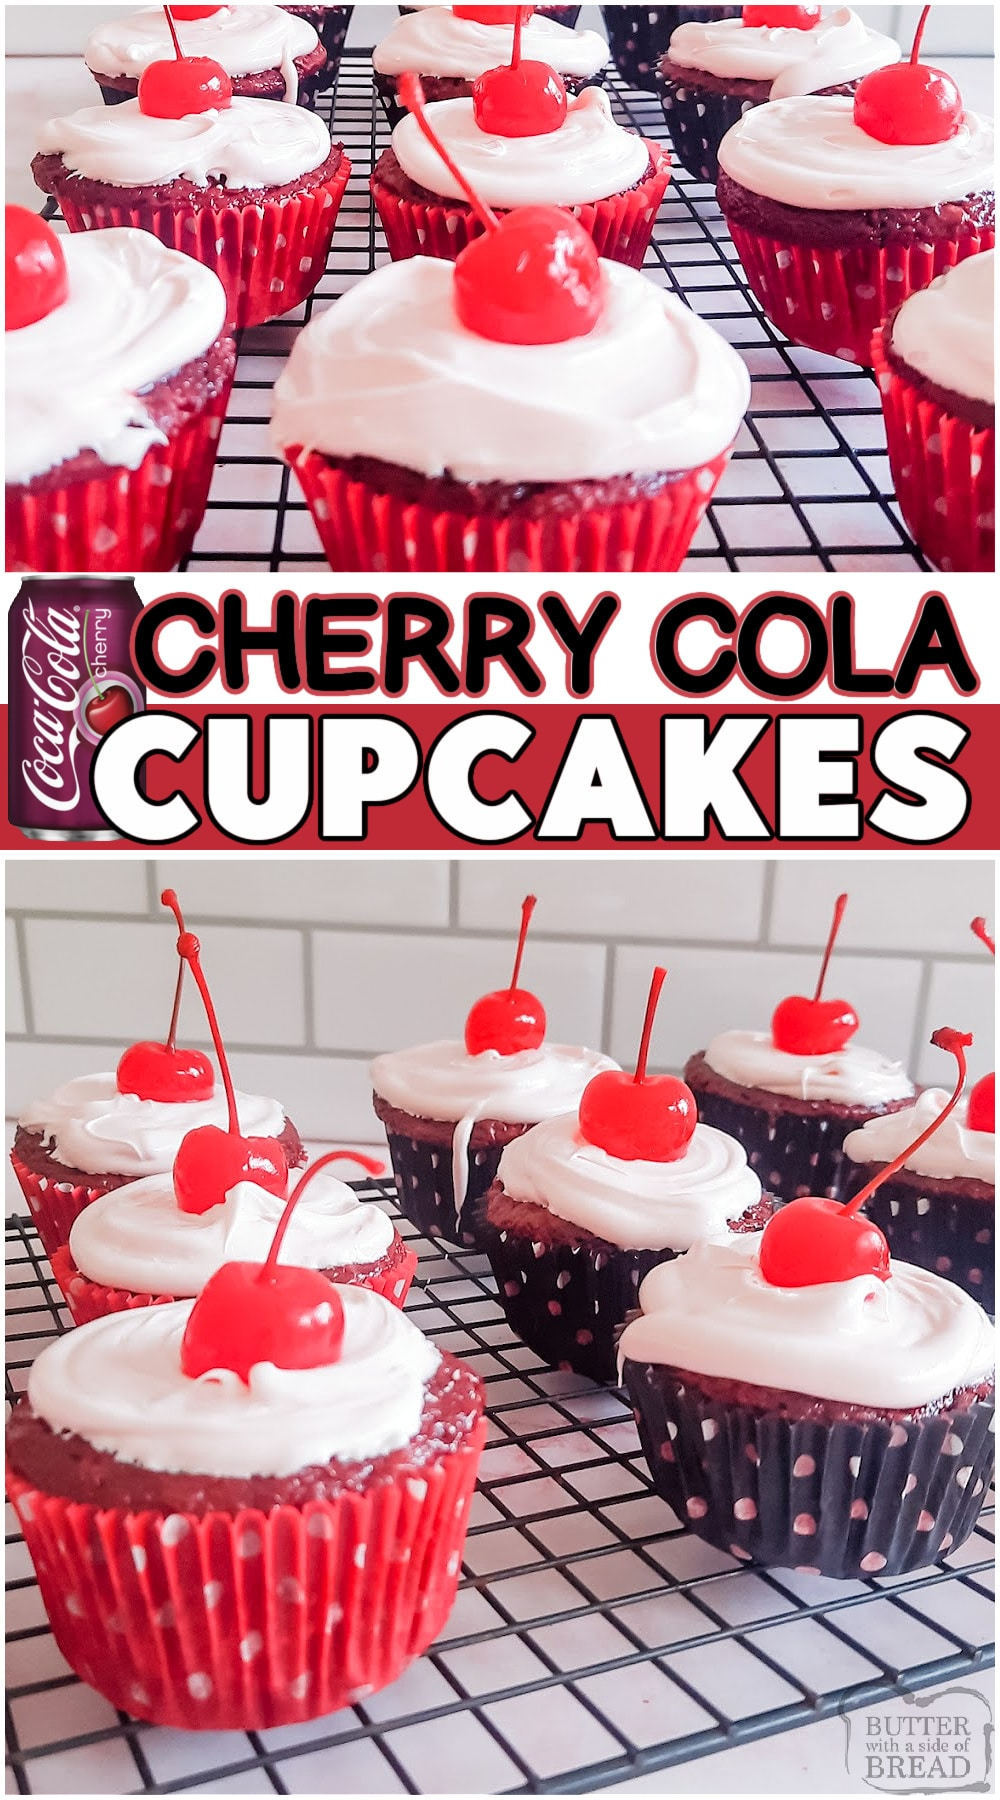 Easy cherry coke cupcakes made with boxed cake mix, maraschino cherries, and Cherry cola for a moist & flavorful chocolate cupcake! Pretty cupcakes that are simple to make with a fun twist on classic cherry flavor, due to the addition of Cherry Cola! #cupcakes #cherry #cherrycoke #soda #cola #baking #dessert #easyrecipe from BUTTER WITH A SIDE OF BREAD